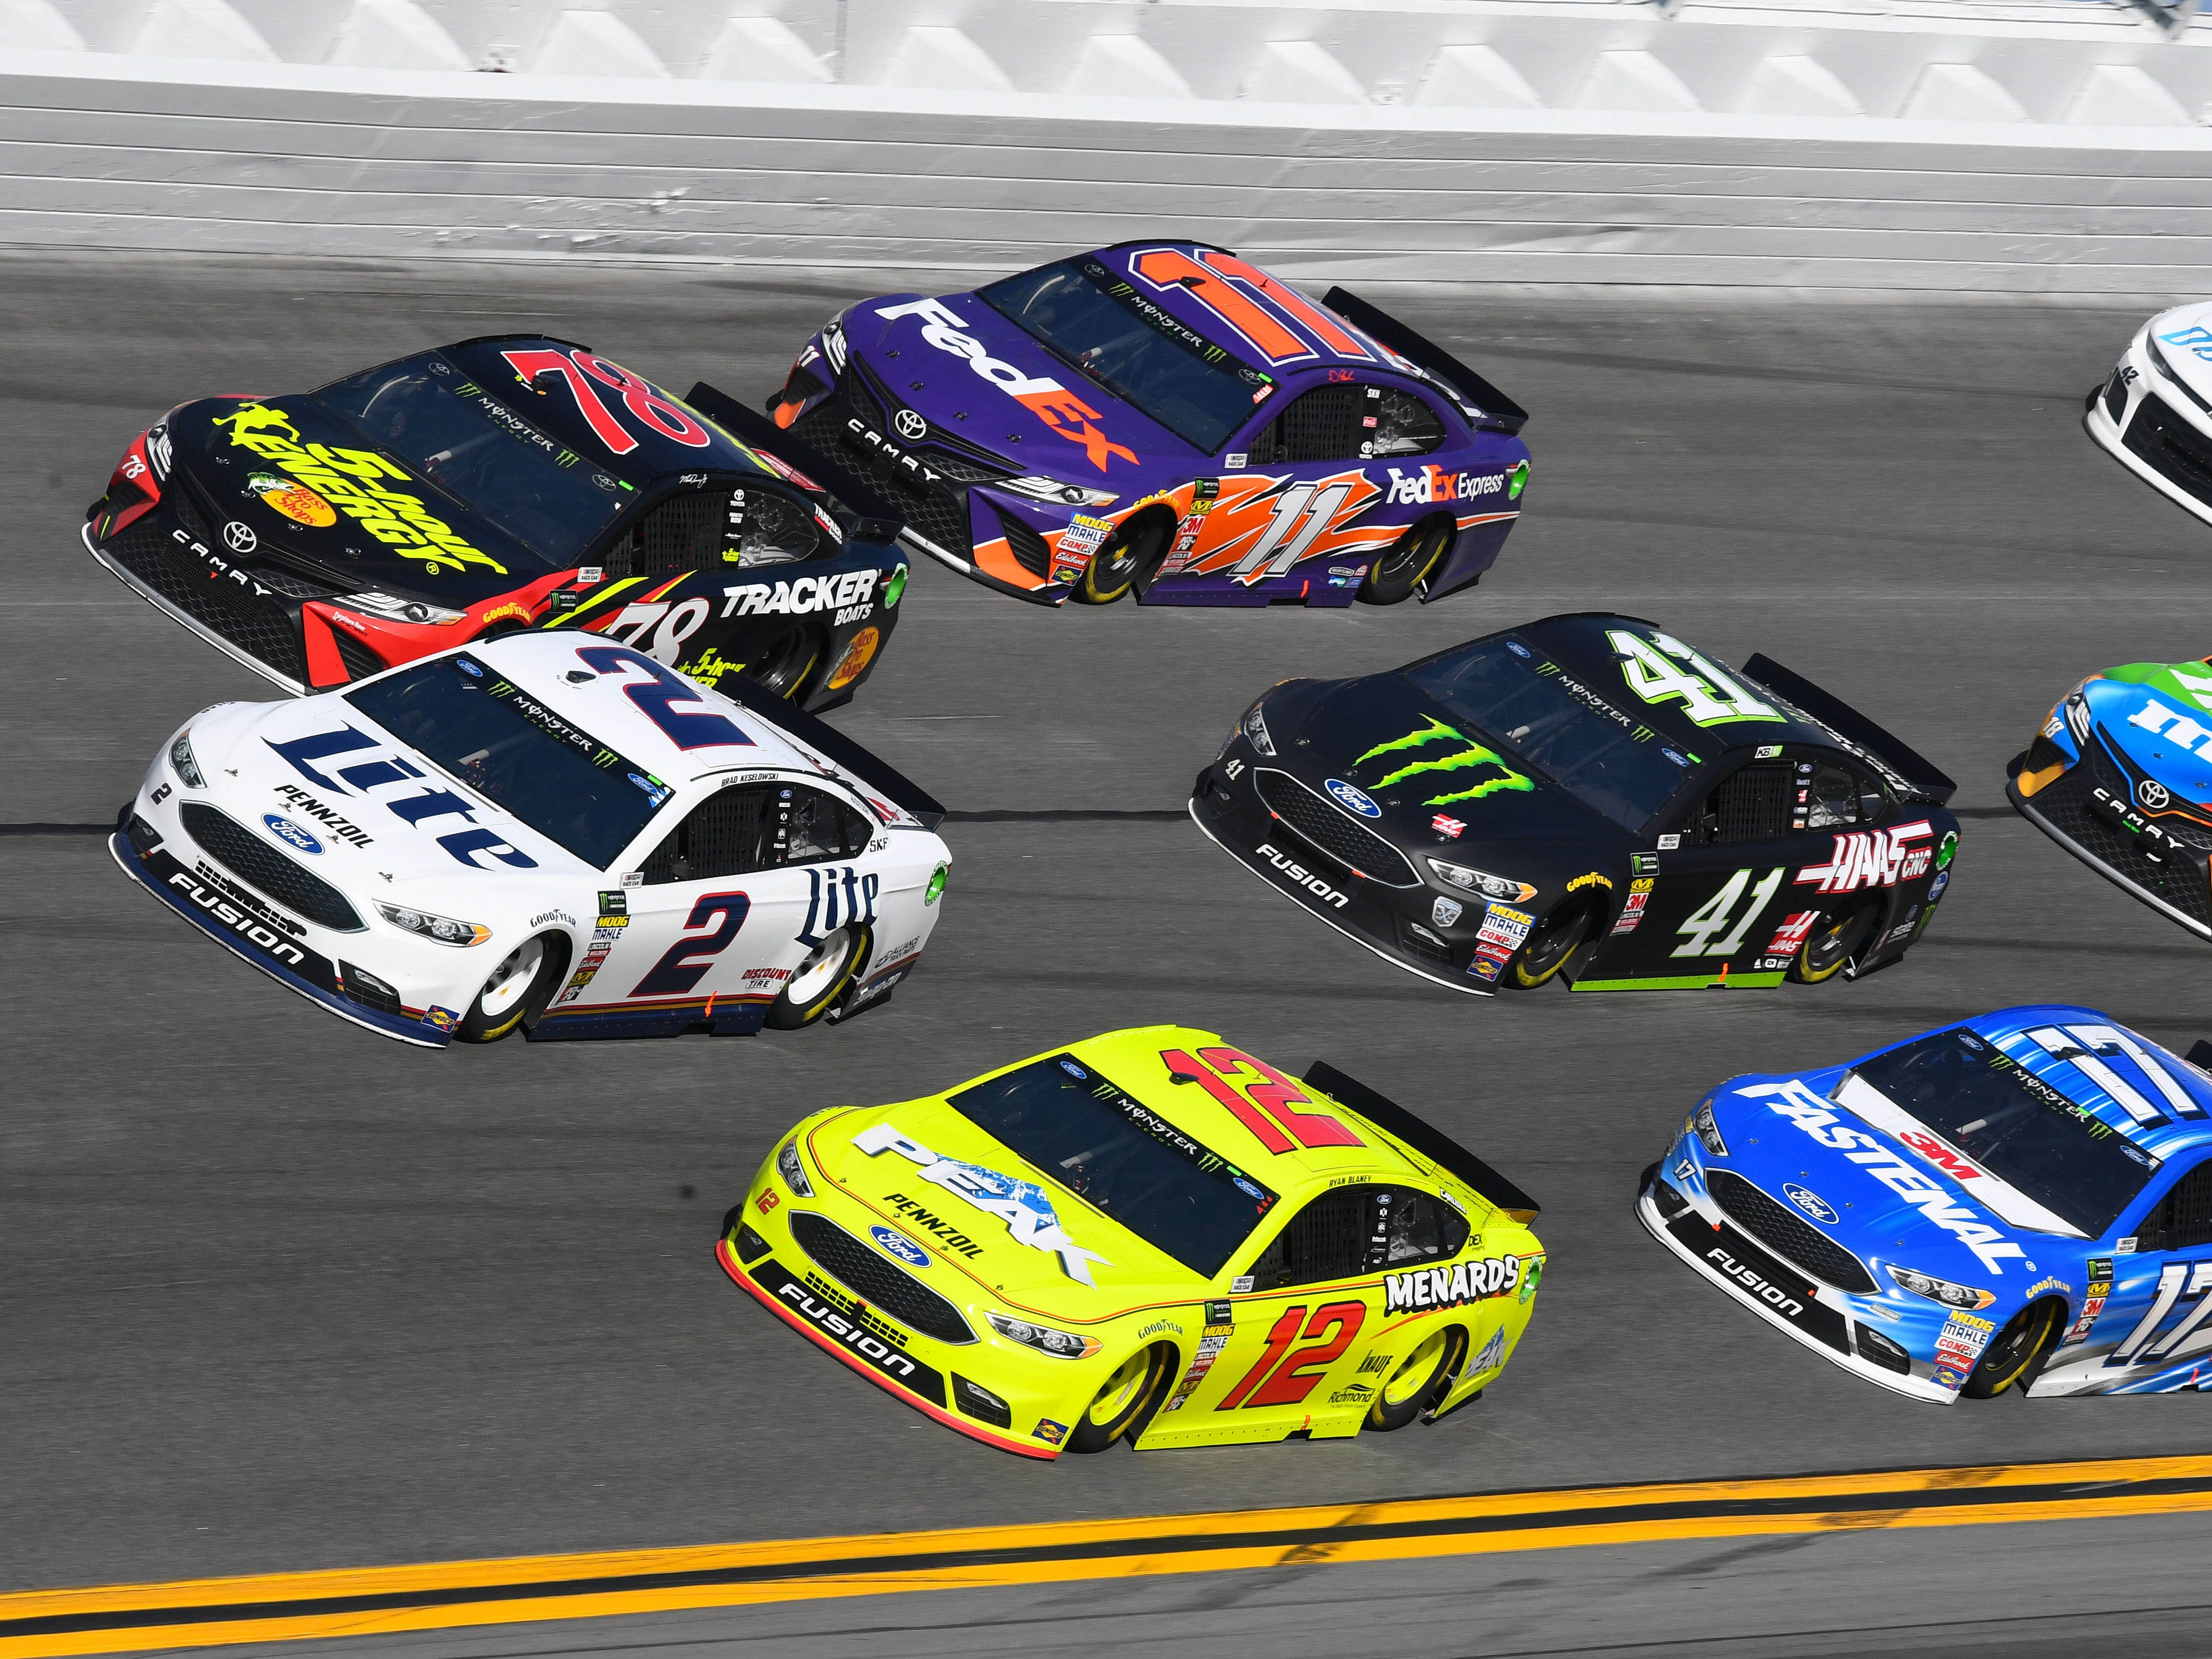 2019 Monster Energy NASCAR Cup Series schedule